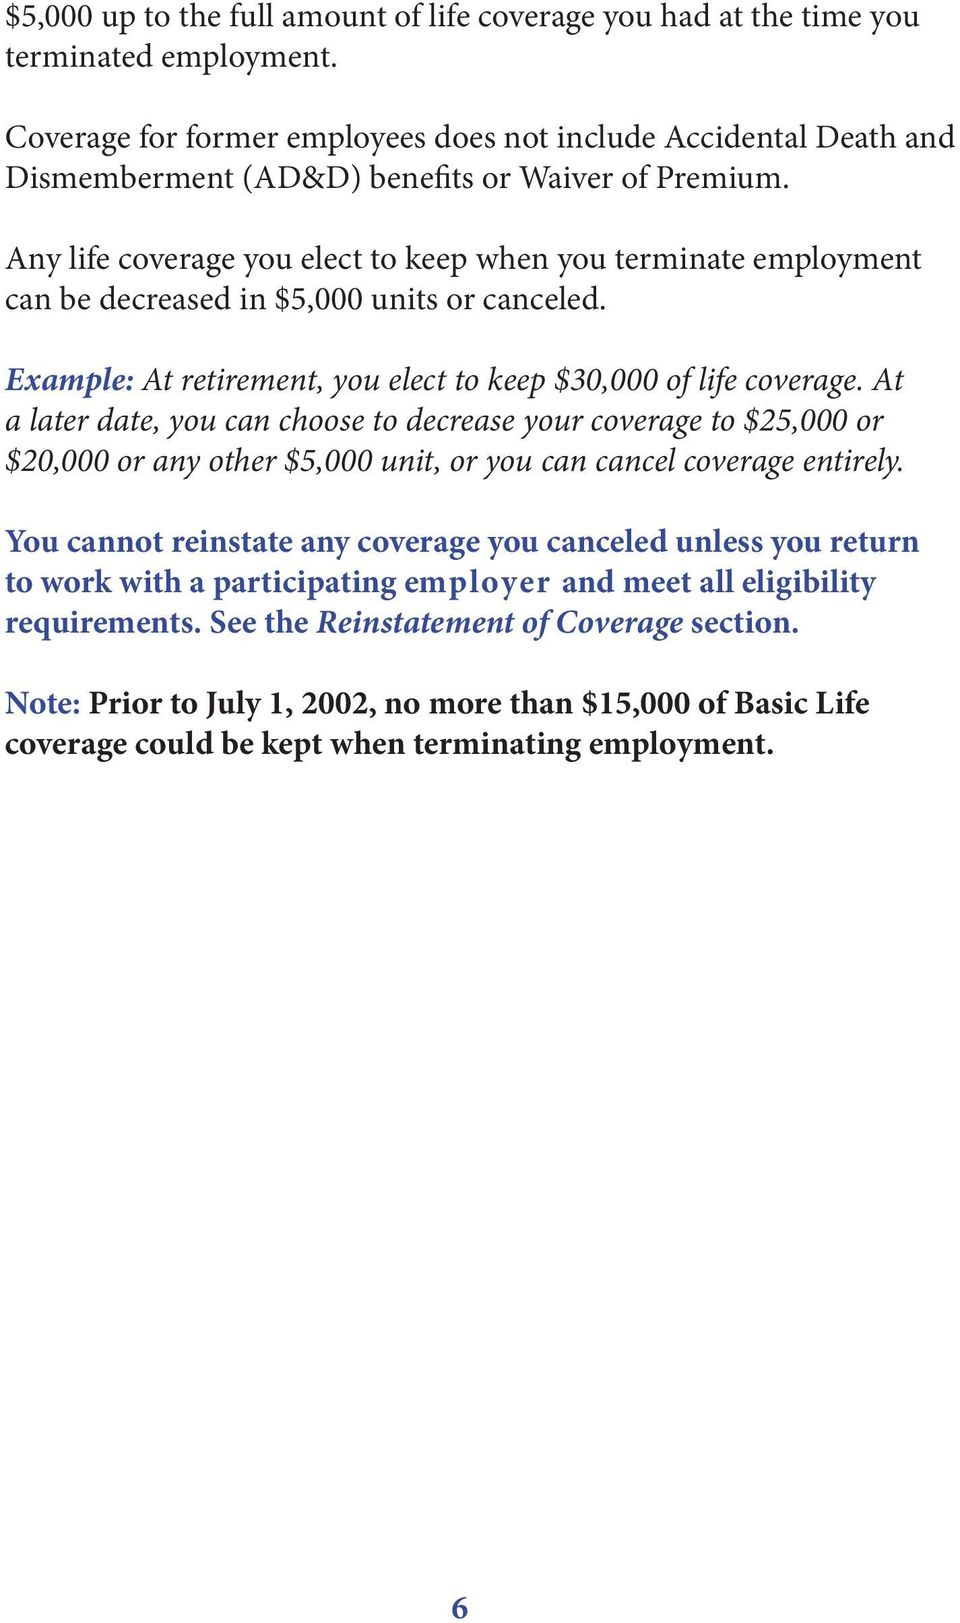 Any life coverage you elect to keep when you terminate employment can be decreased in $5,000 units or canceled. Example: At retirement, you elect to keep $30,000 of life coverage.